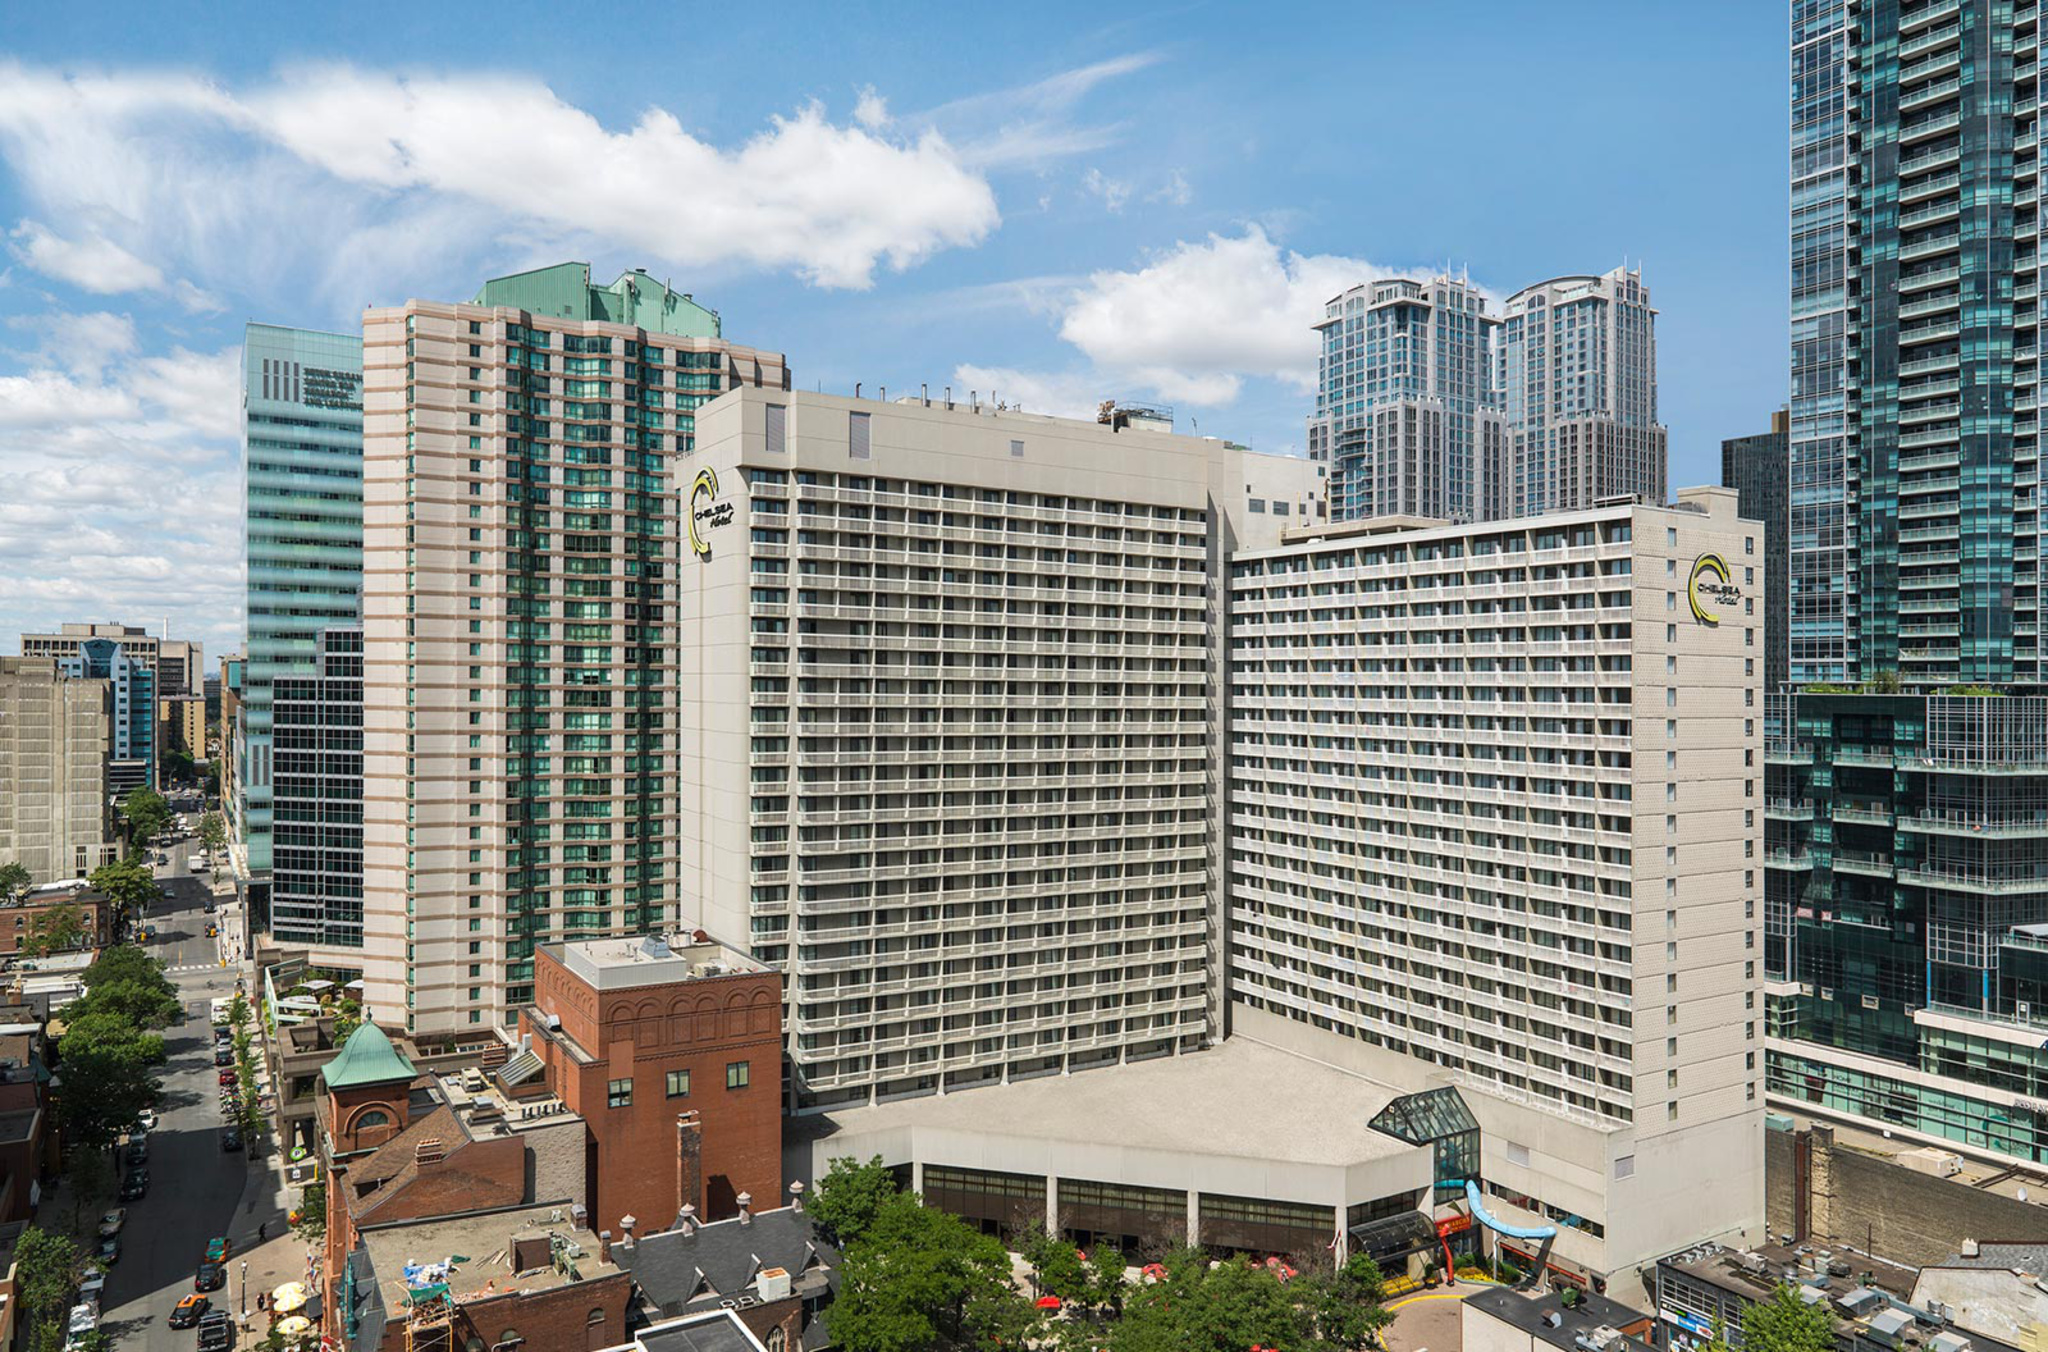 The Best Cheap Hotels In Toronto